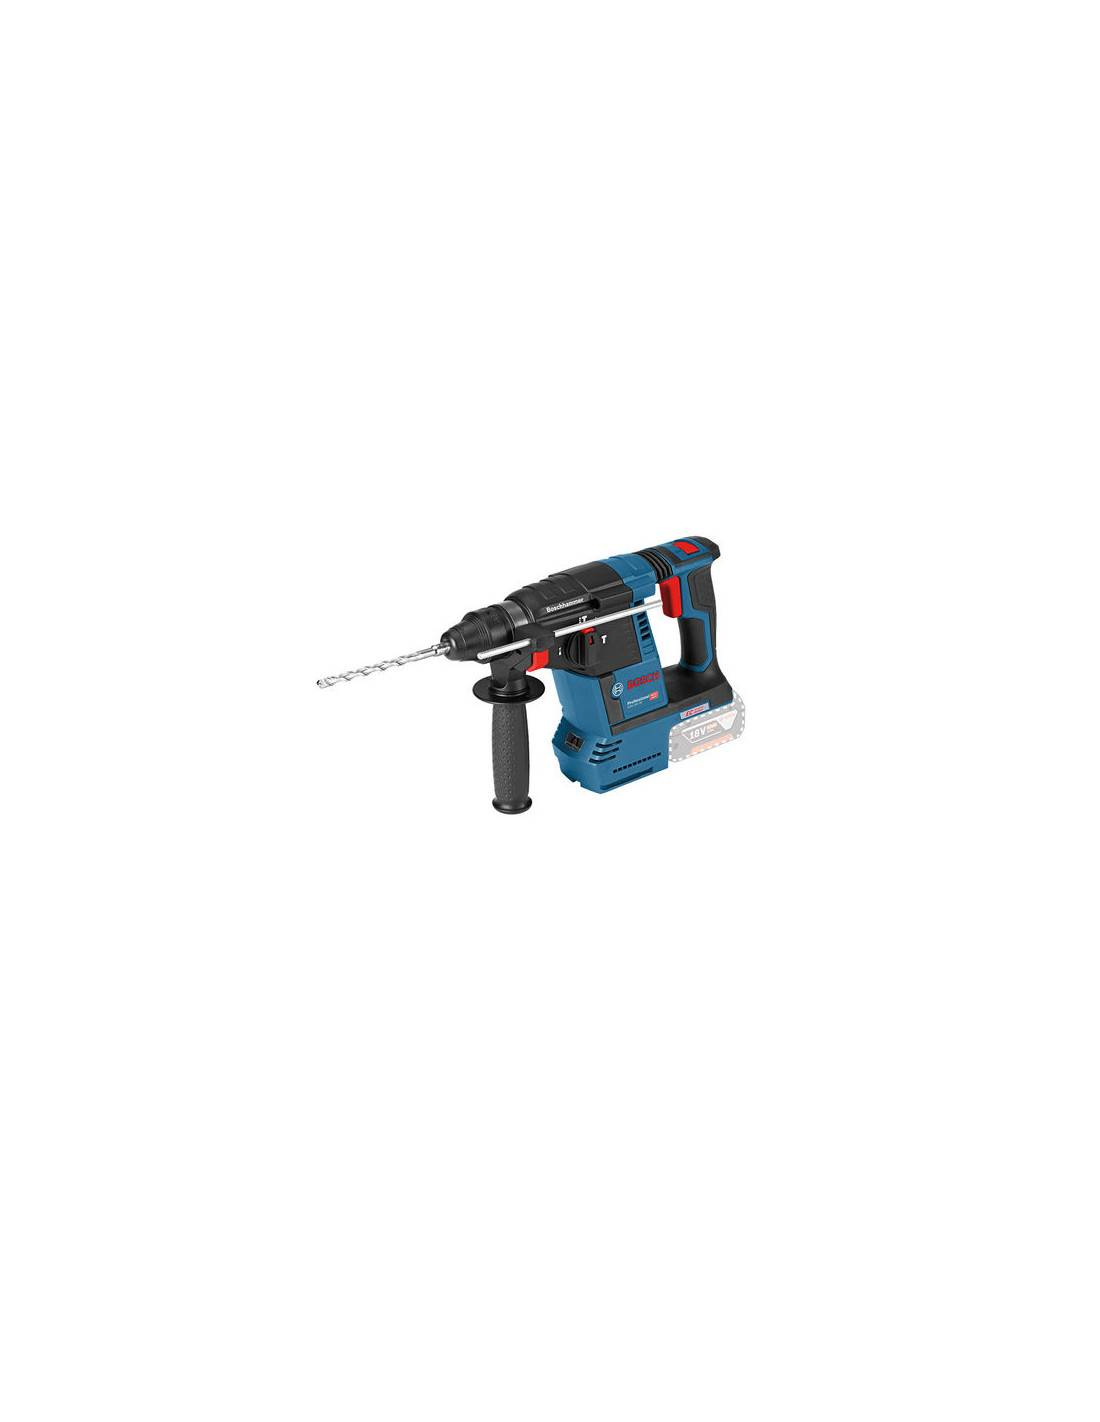 Perforateur sans fil GBH 18V-26 version solo (machine seule) en coffret L-BOXX - BOSCH - 0611909001